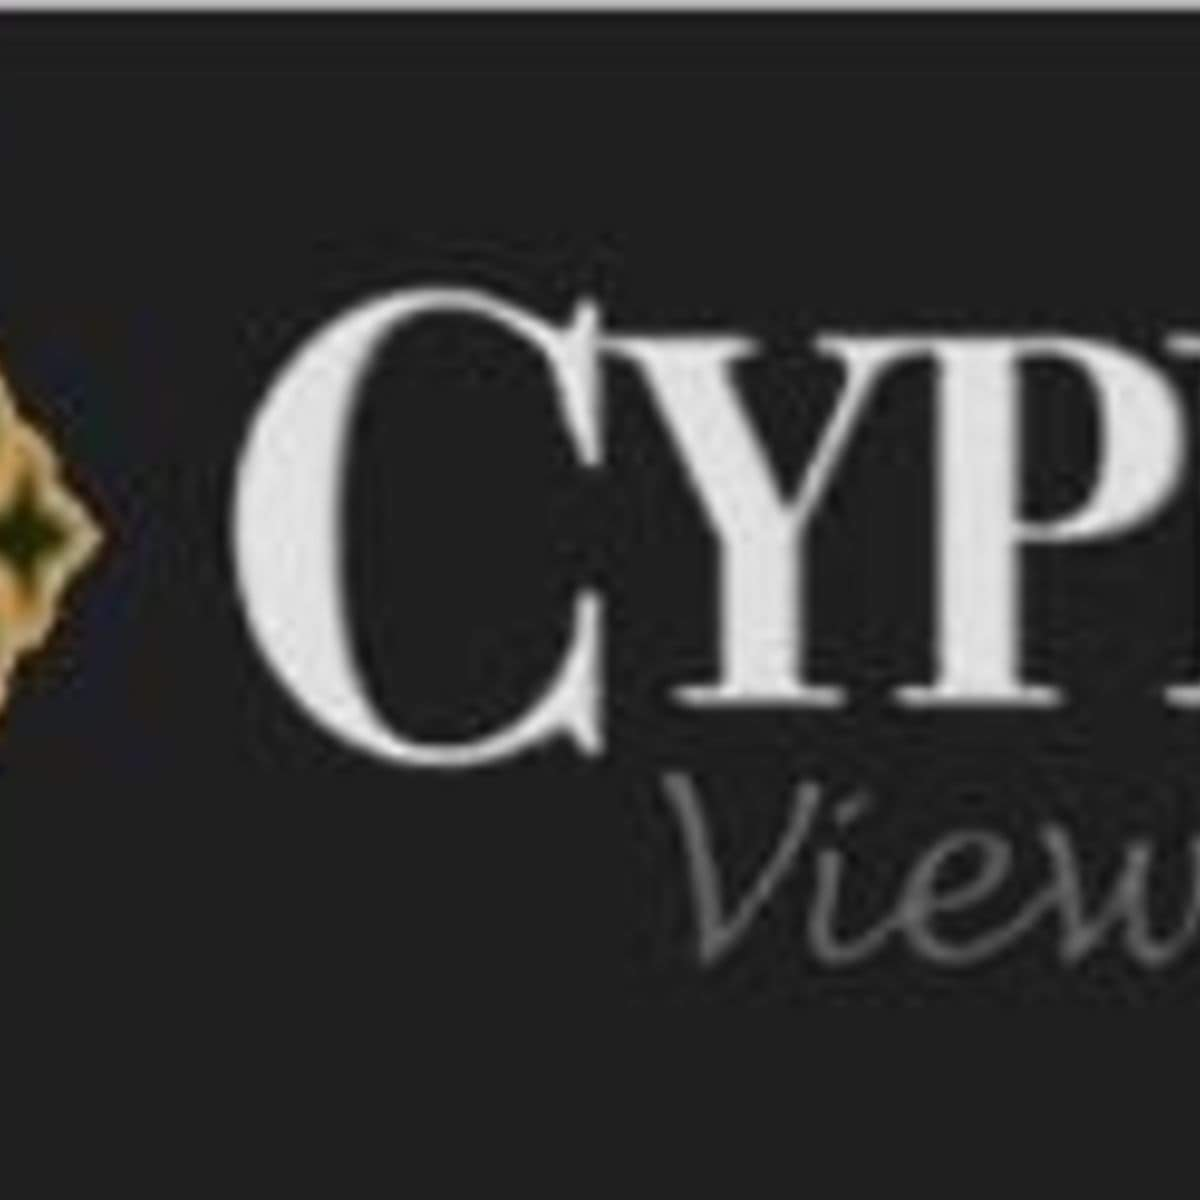 Craigslist Nh Apartments: Cypress View Villas Apartments For Rent In Weatherford